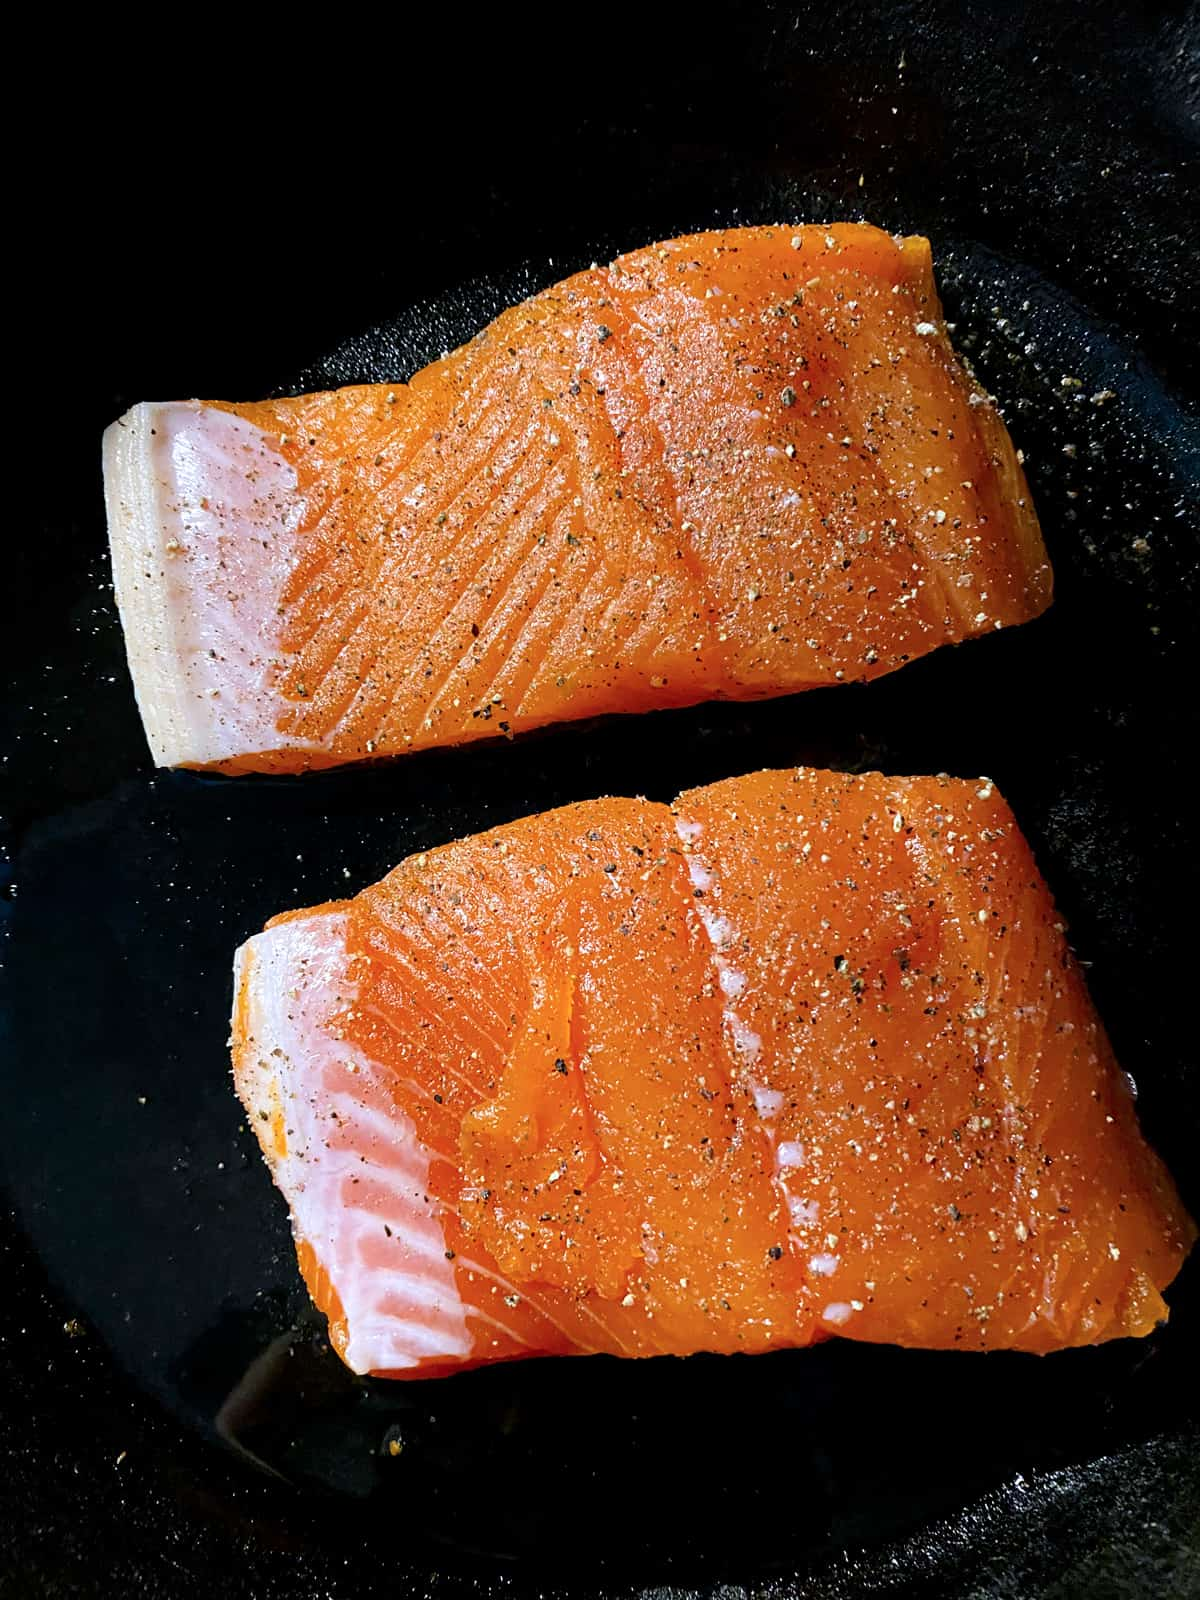 Two pieces of salmon cooking.